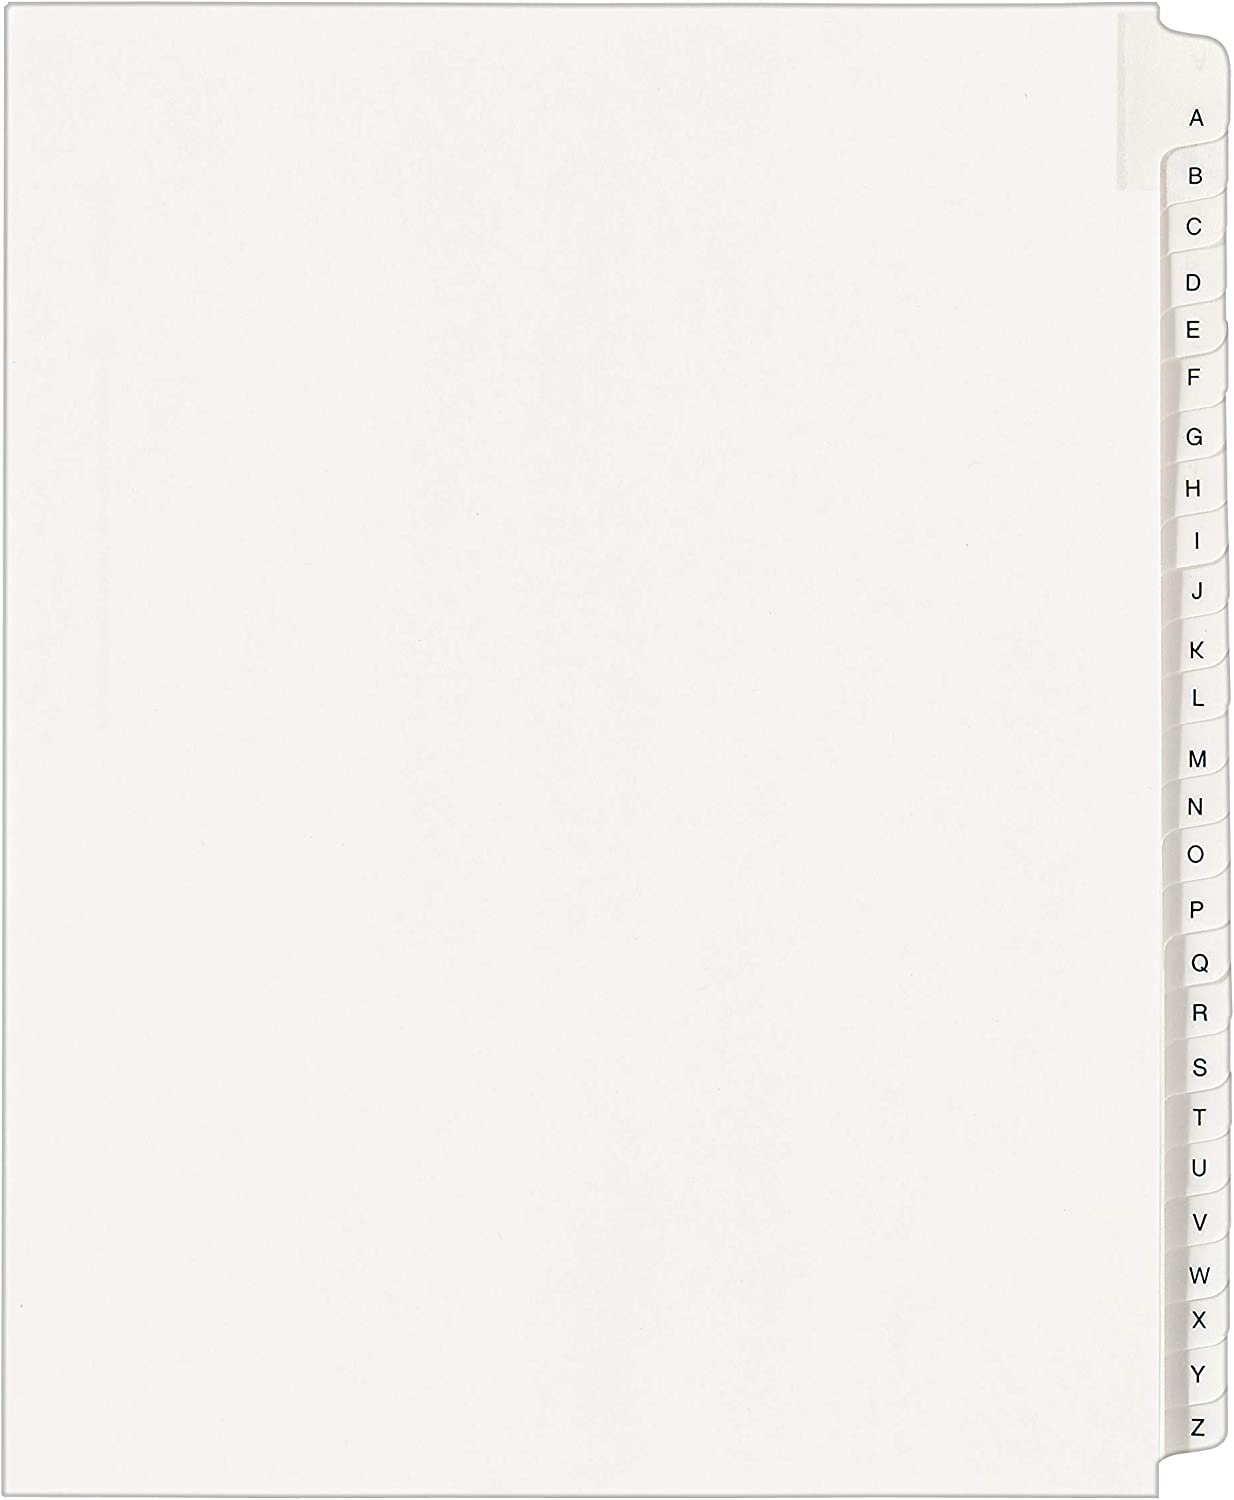 Avery Collated Legal Exhibit Dividers Side Tab 8.5 x 11 inches 82106 1 Set Allstate Style ,White EXHIBIT 1-25